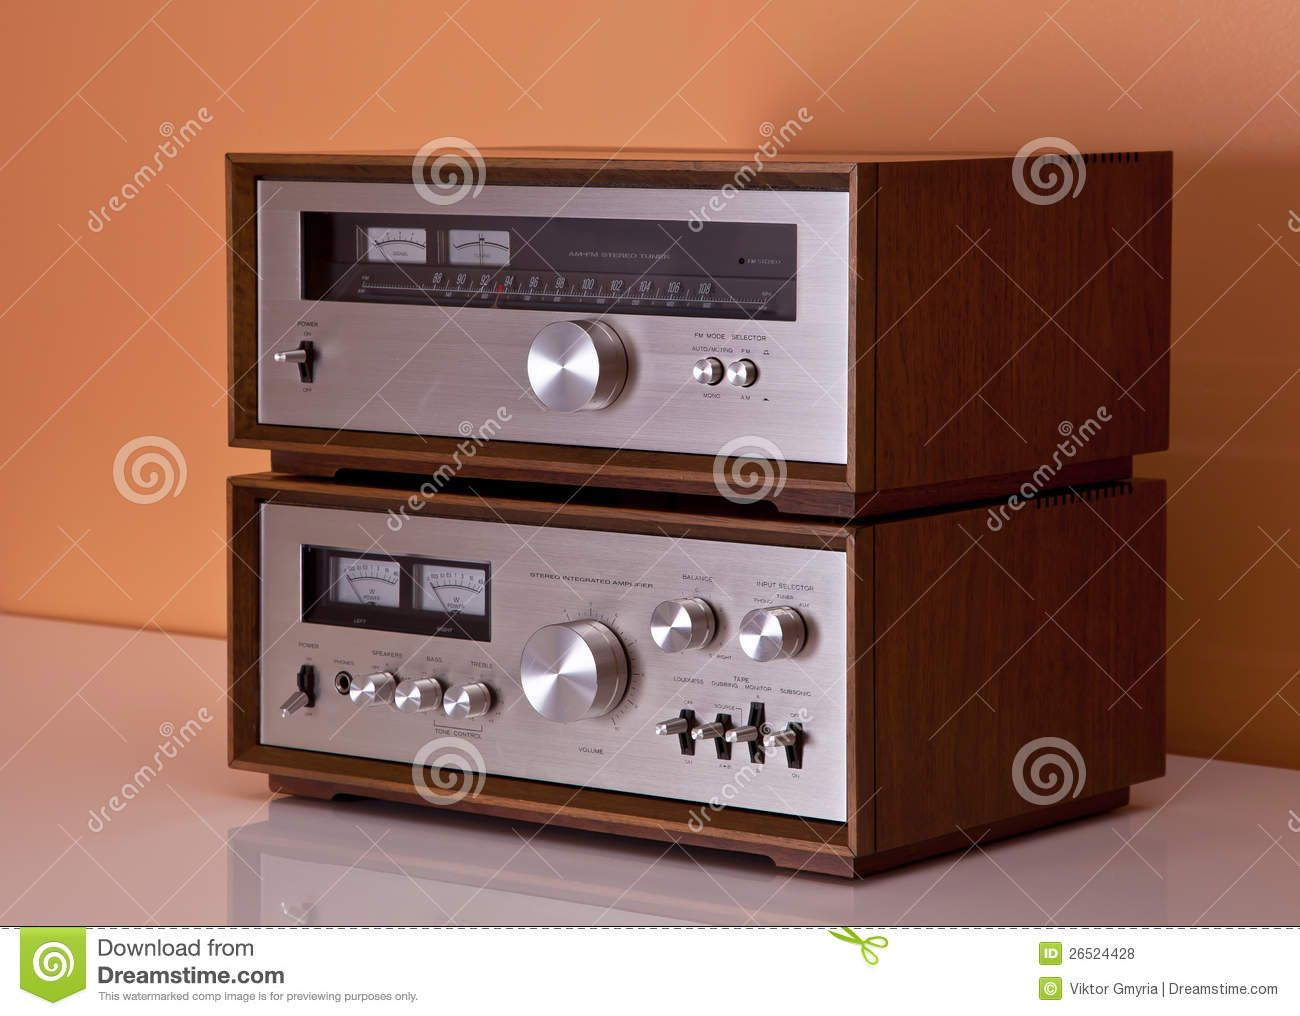 Vintage Stereo Amplifier Tuner Wooden Cabinets 26524428